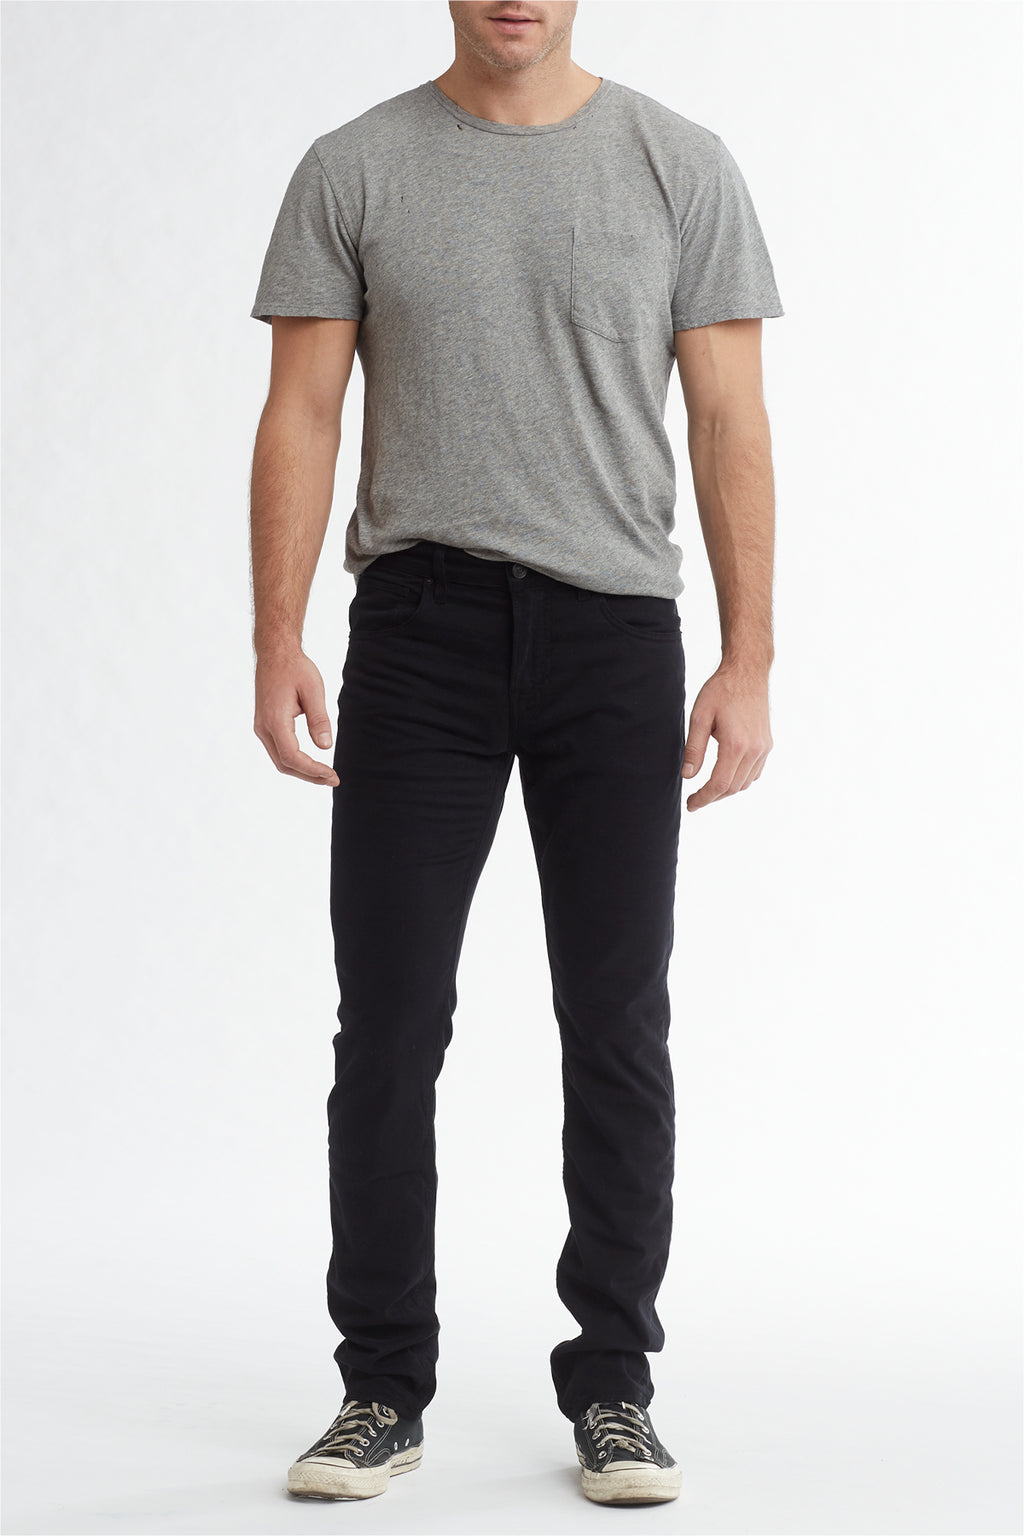 BLAKE SLIM STRAIGHT TWILL JEAN - BLACK - Image 1